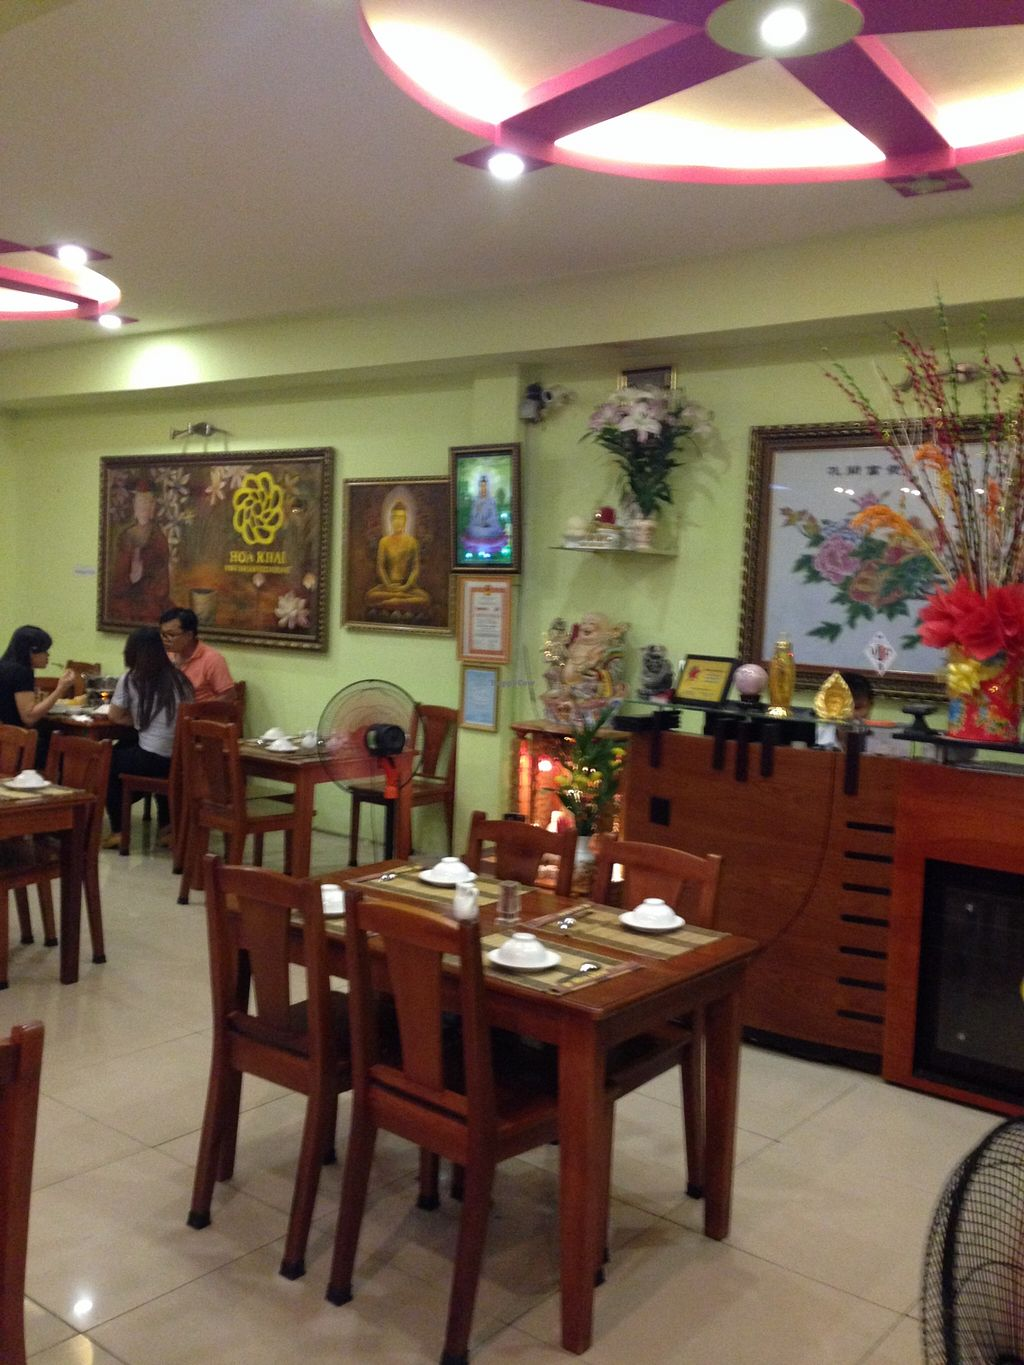 "Photo of Hoa Khai Vegetarian Restaurant  by <a href=""/members/profile/Stevie"">Stevie</a> <br/>6 <br/> September 25, 2015  - <a href='/contact/abuse/image/27015/119082'>Report</a>"